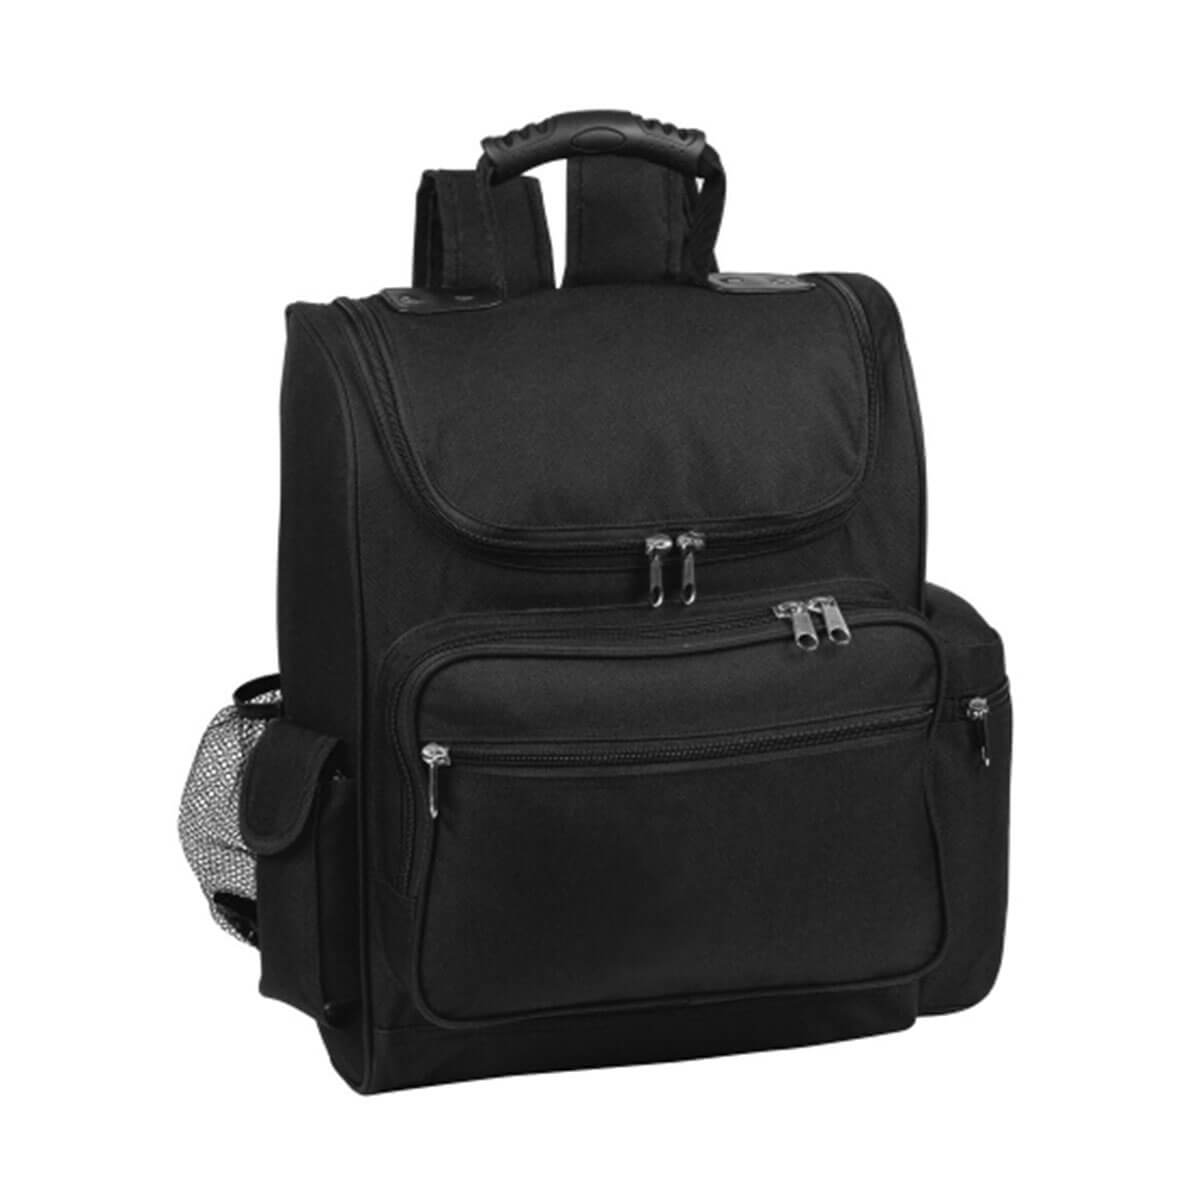 Deluxe Business Backpack-Black